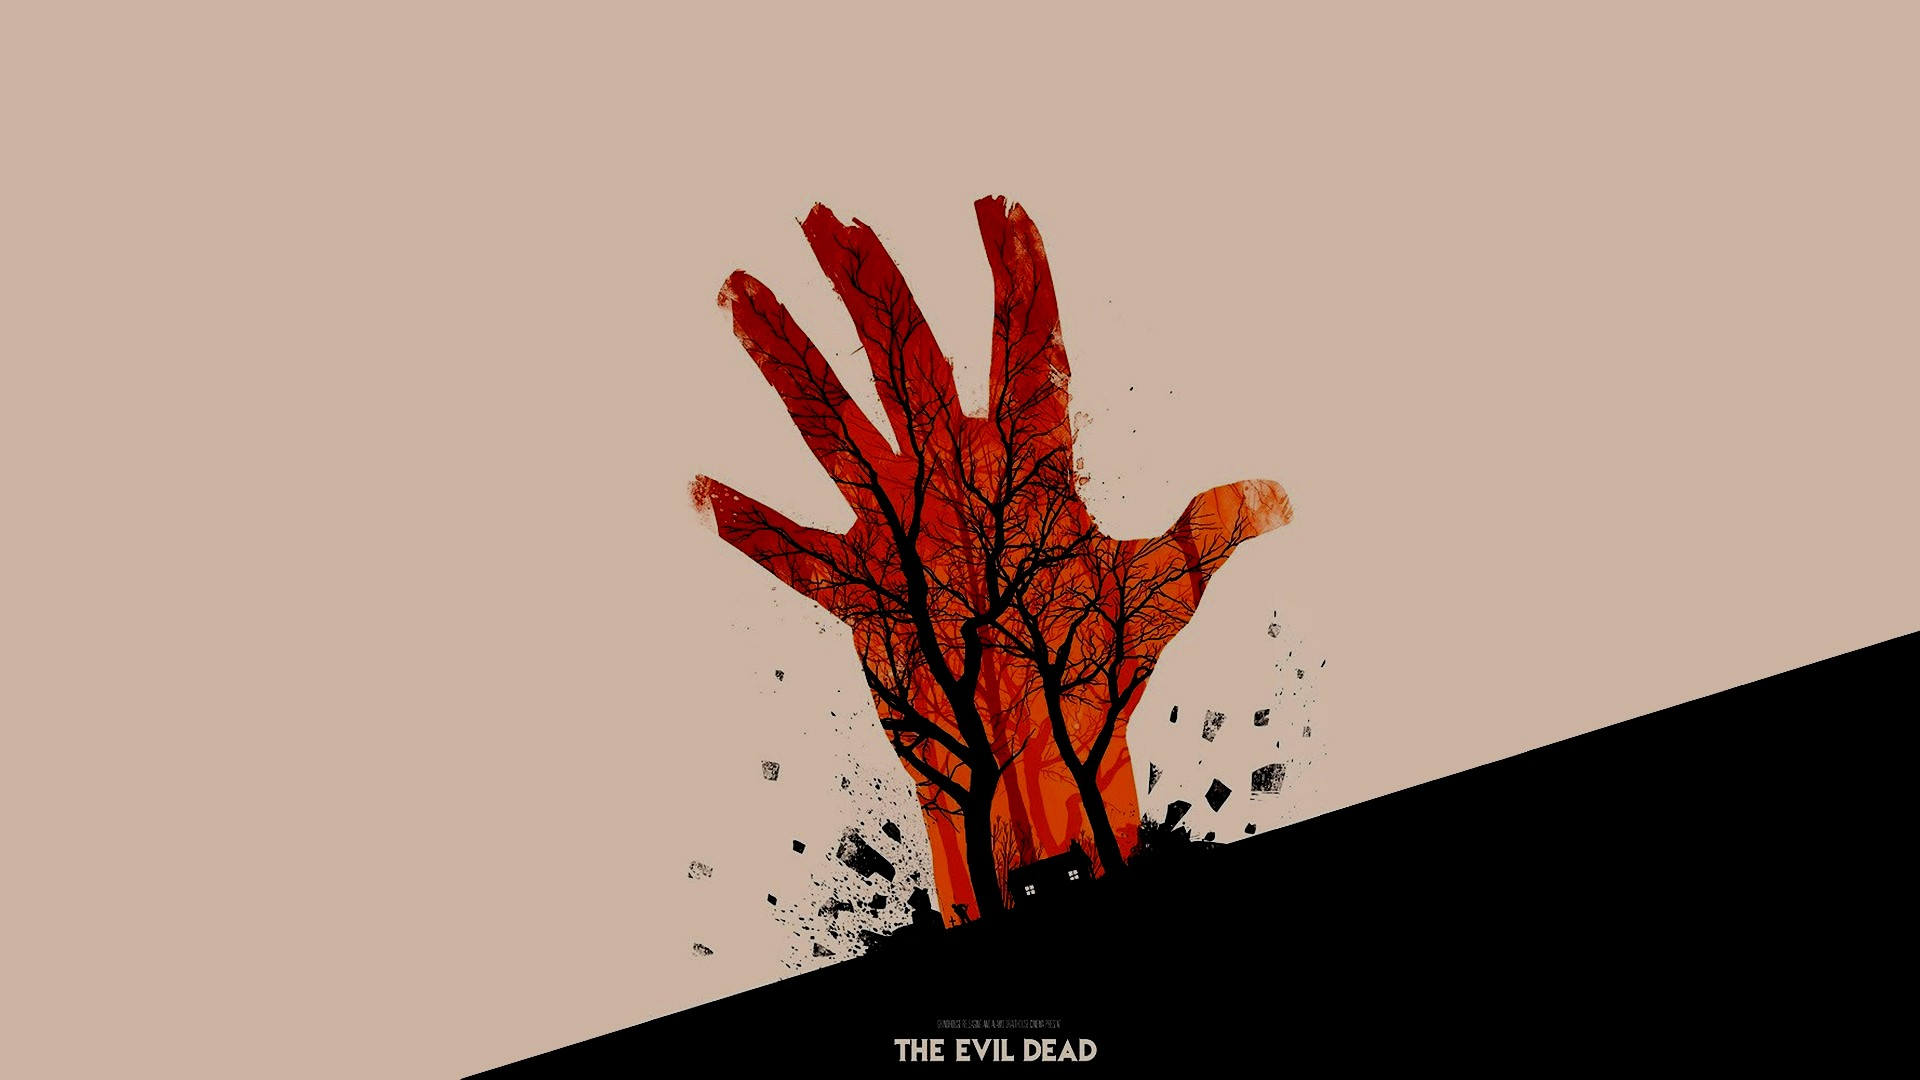 movies, the Evil Dead, minimalism, olly Moss, artwork